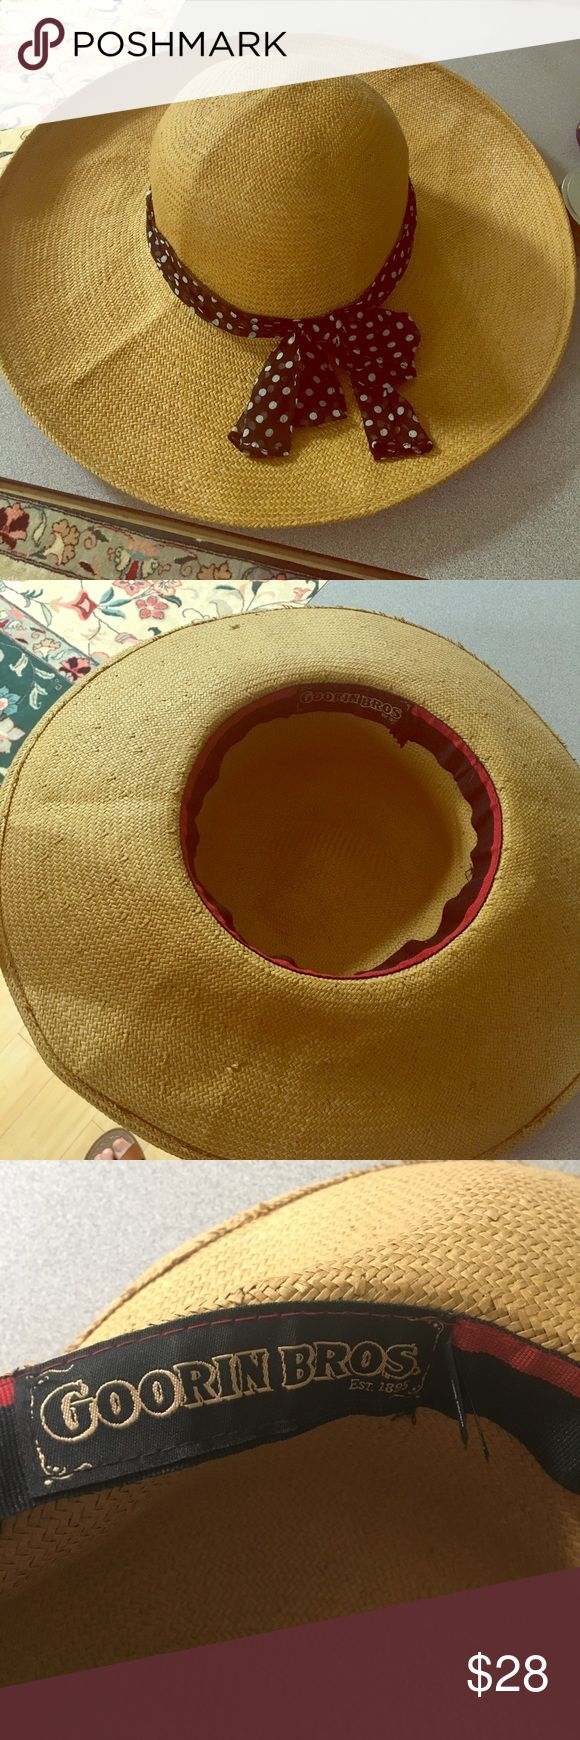 Goorin Brothers Floppy Hat Perfect for derby parties, the beach, or any sun-filled day. Black and white polka date ribbon, which is attached. If you're not familiar with Goorin Brothers, they're hats are  high quality! Size L, I believe. See sizing chart. Goorin Brothers Accessories Hats